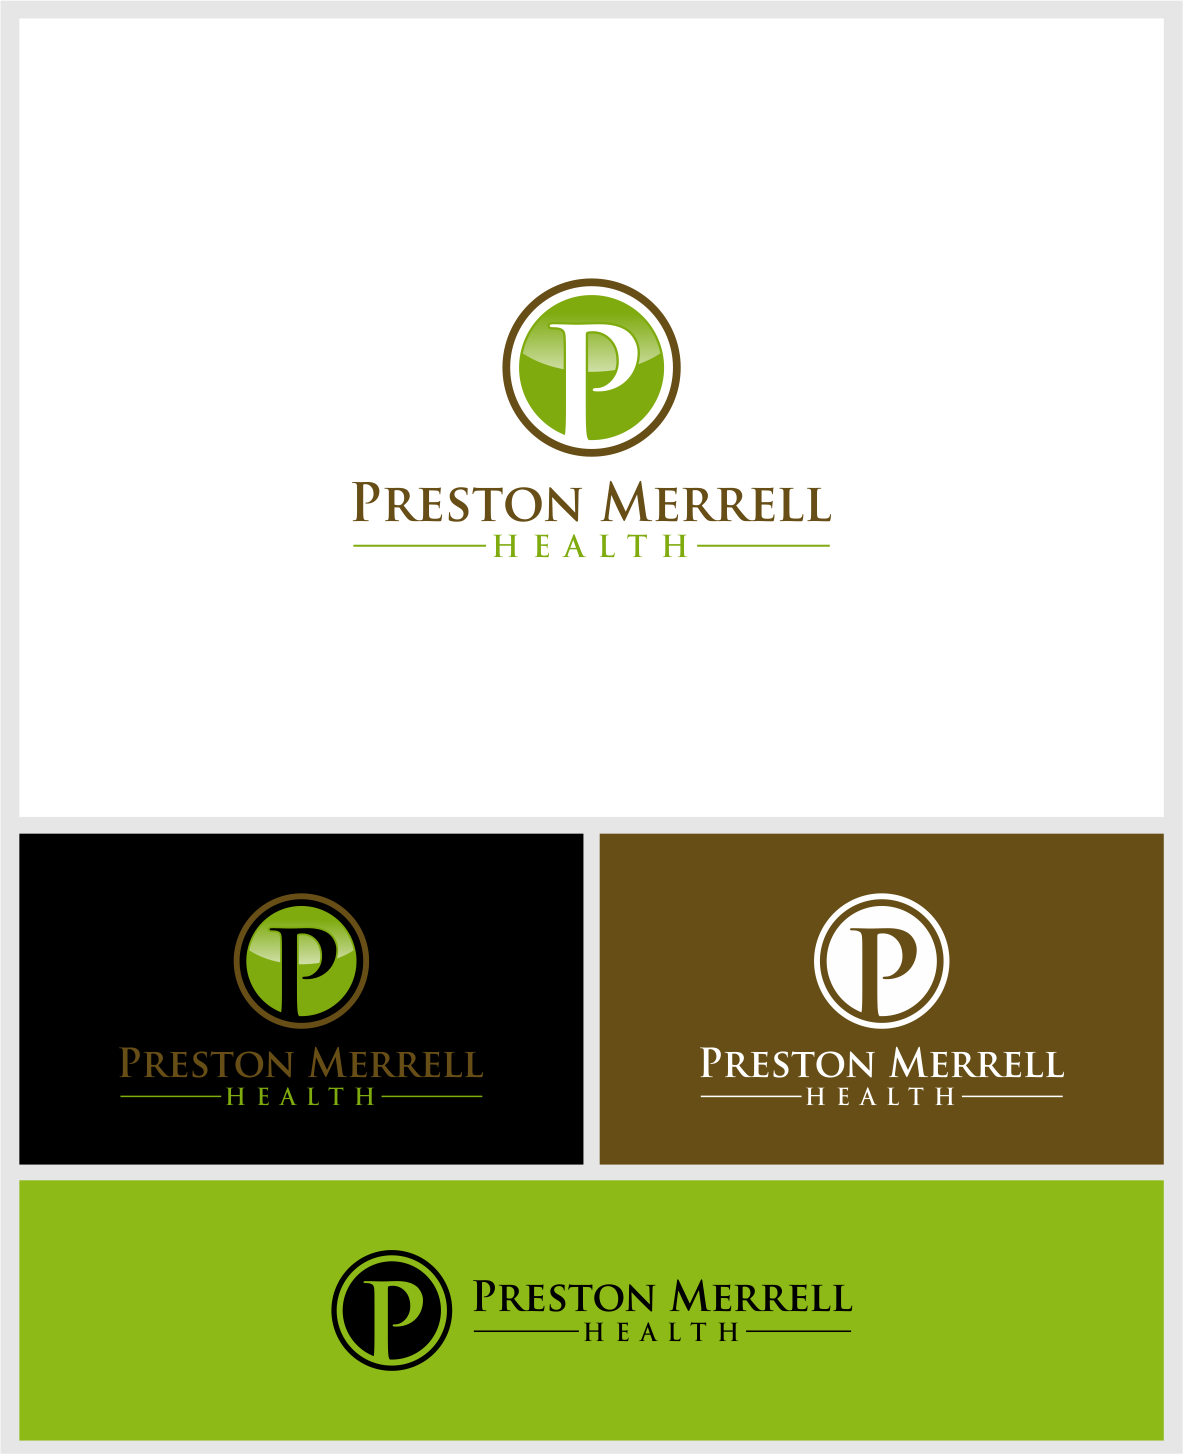 Logo Design by haidu - Entry No. 40 in the Logo Design Contest Creative Logo Design for Preston Merrell Health.